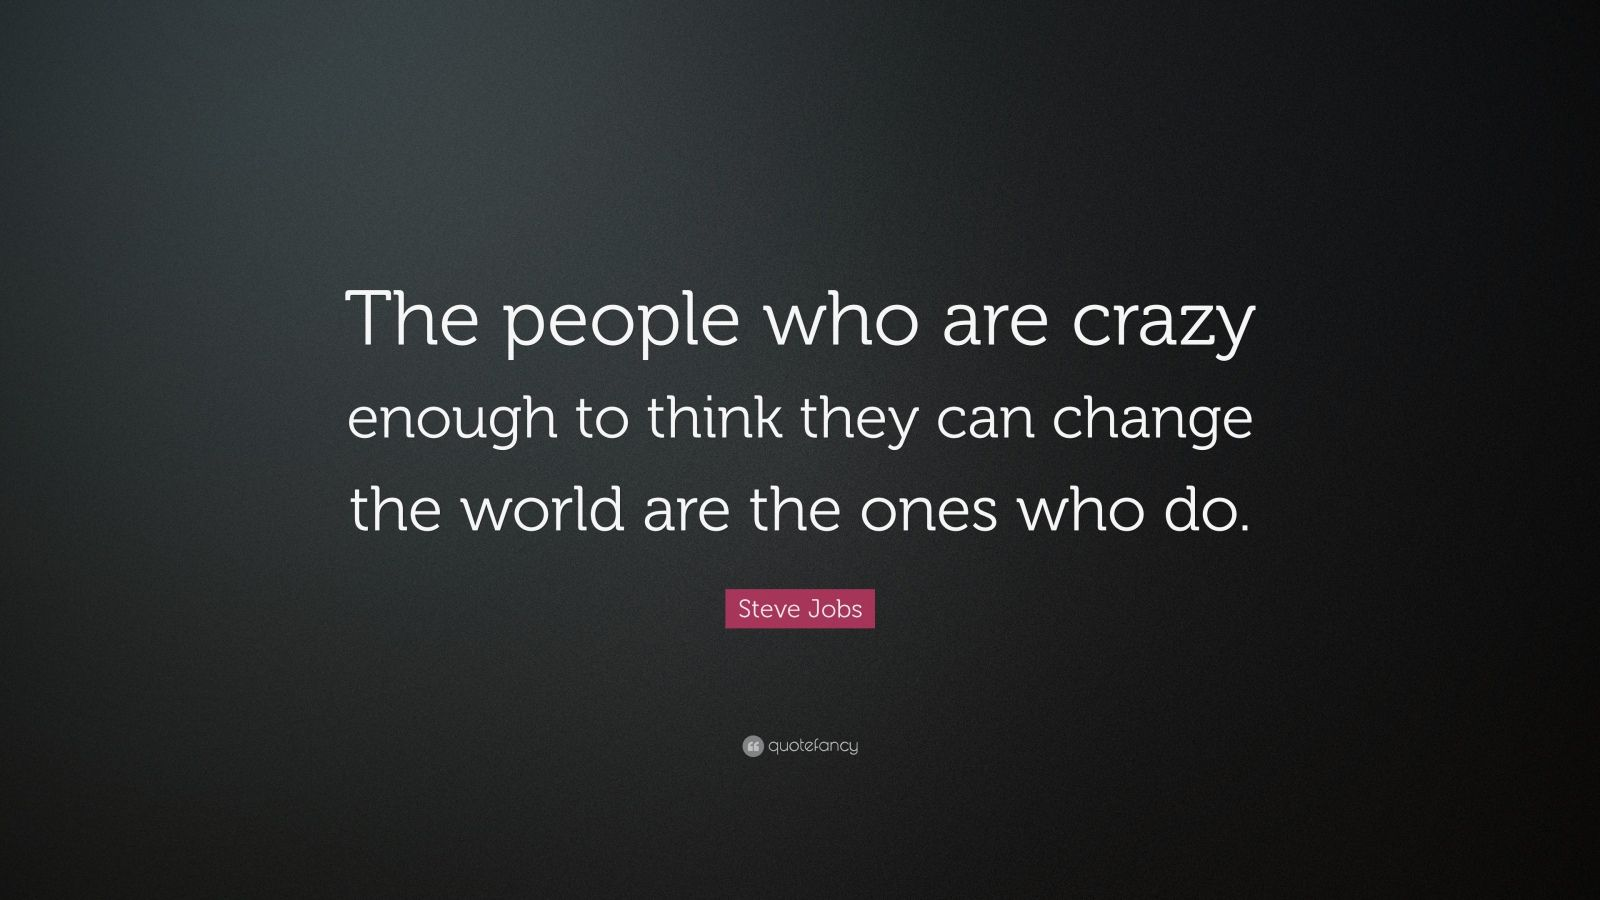 People Who Are Crazy Enough to Change the World Quotes